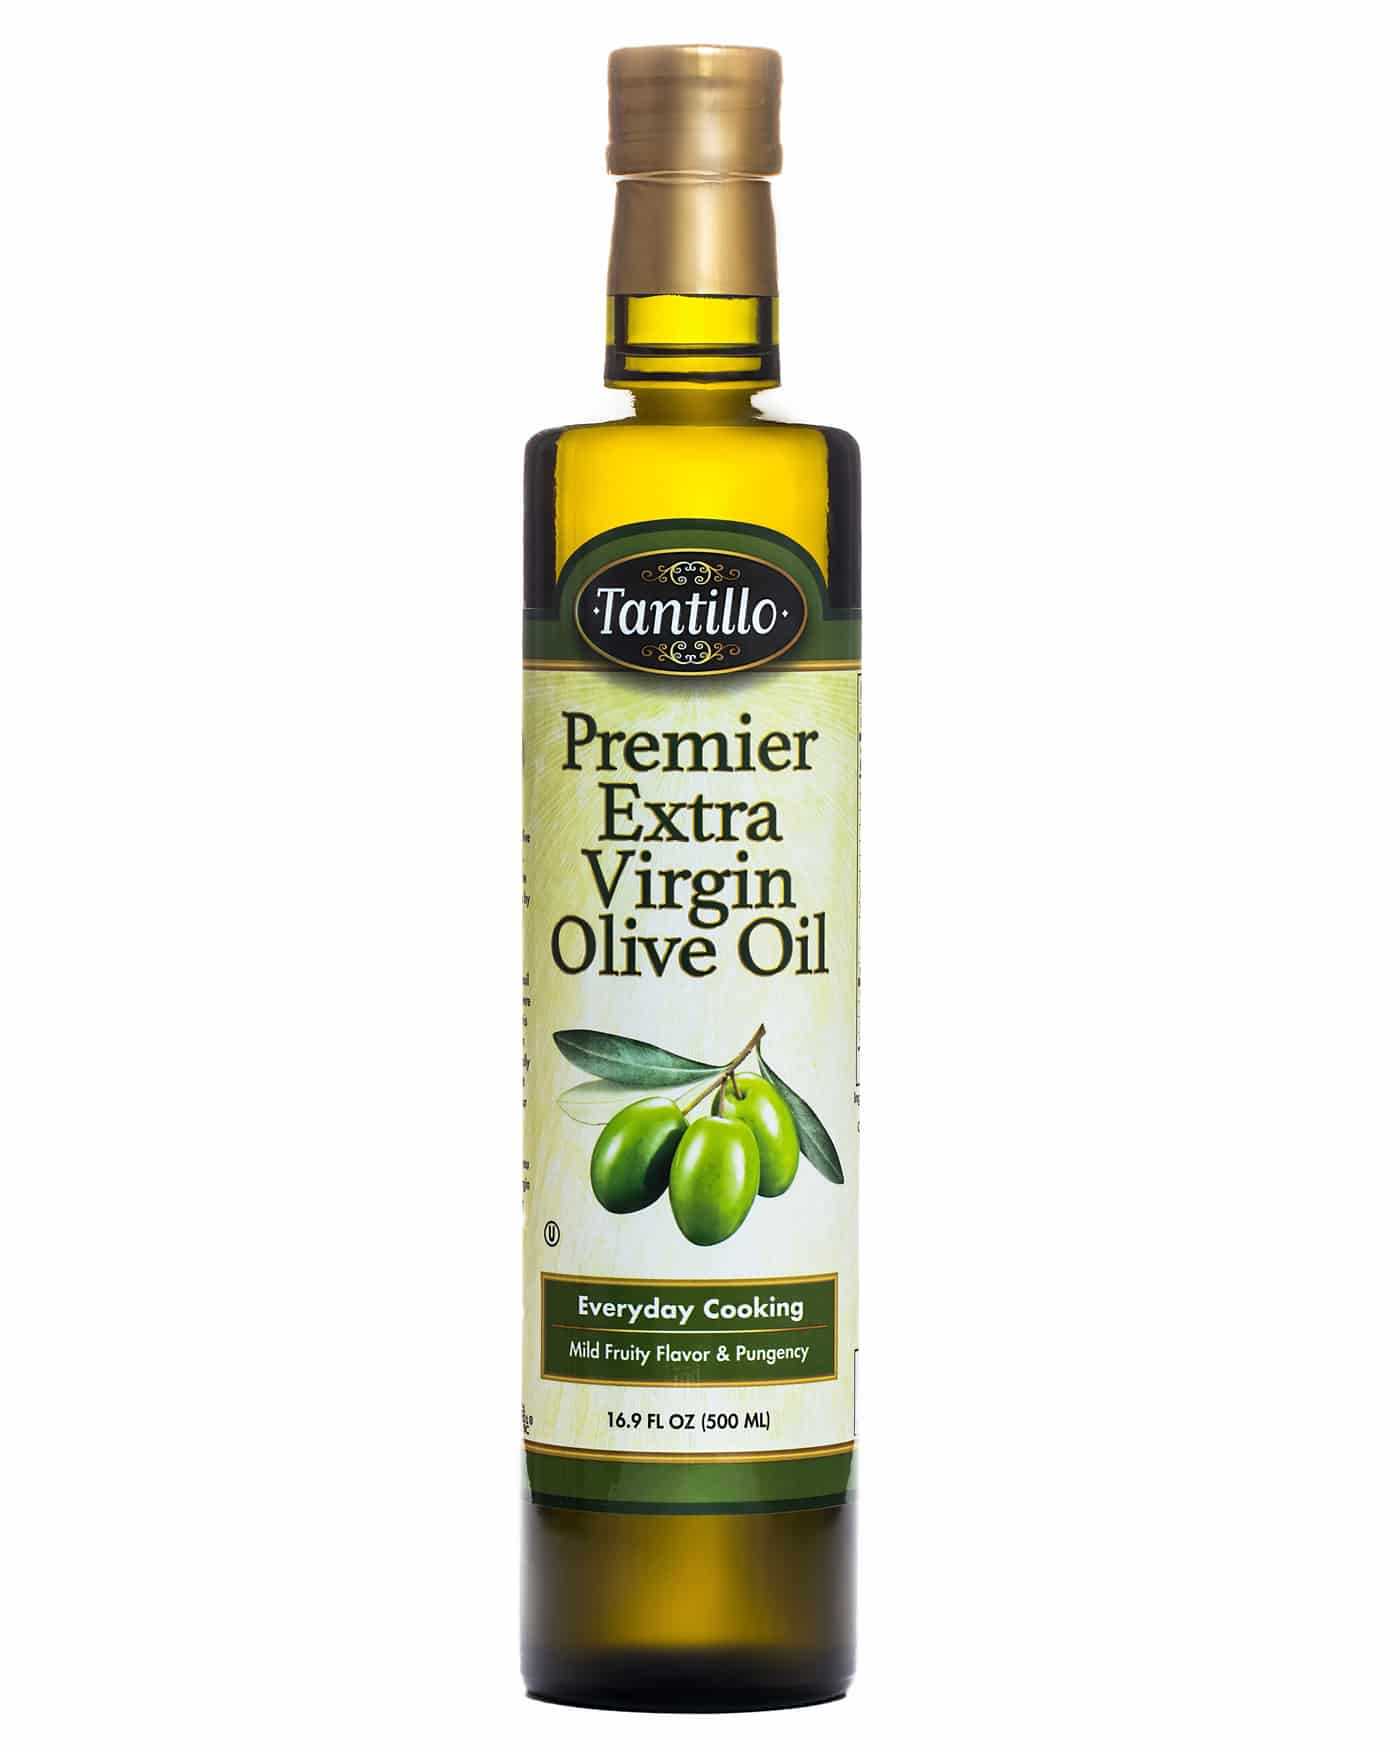 Tantillo Premier Extra Virgin Olive Oil 500 mL (Pack of 2)